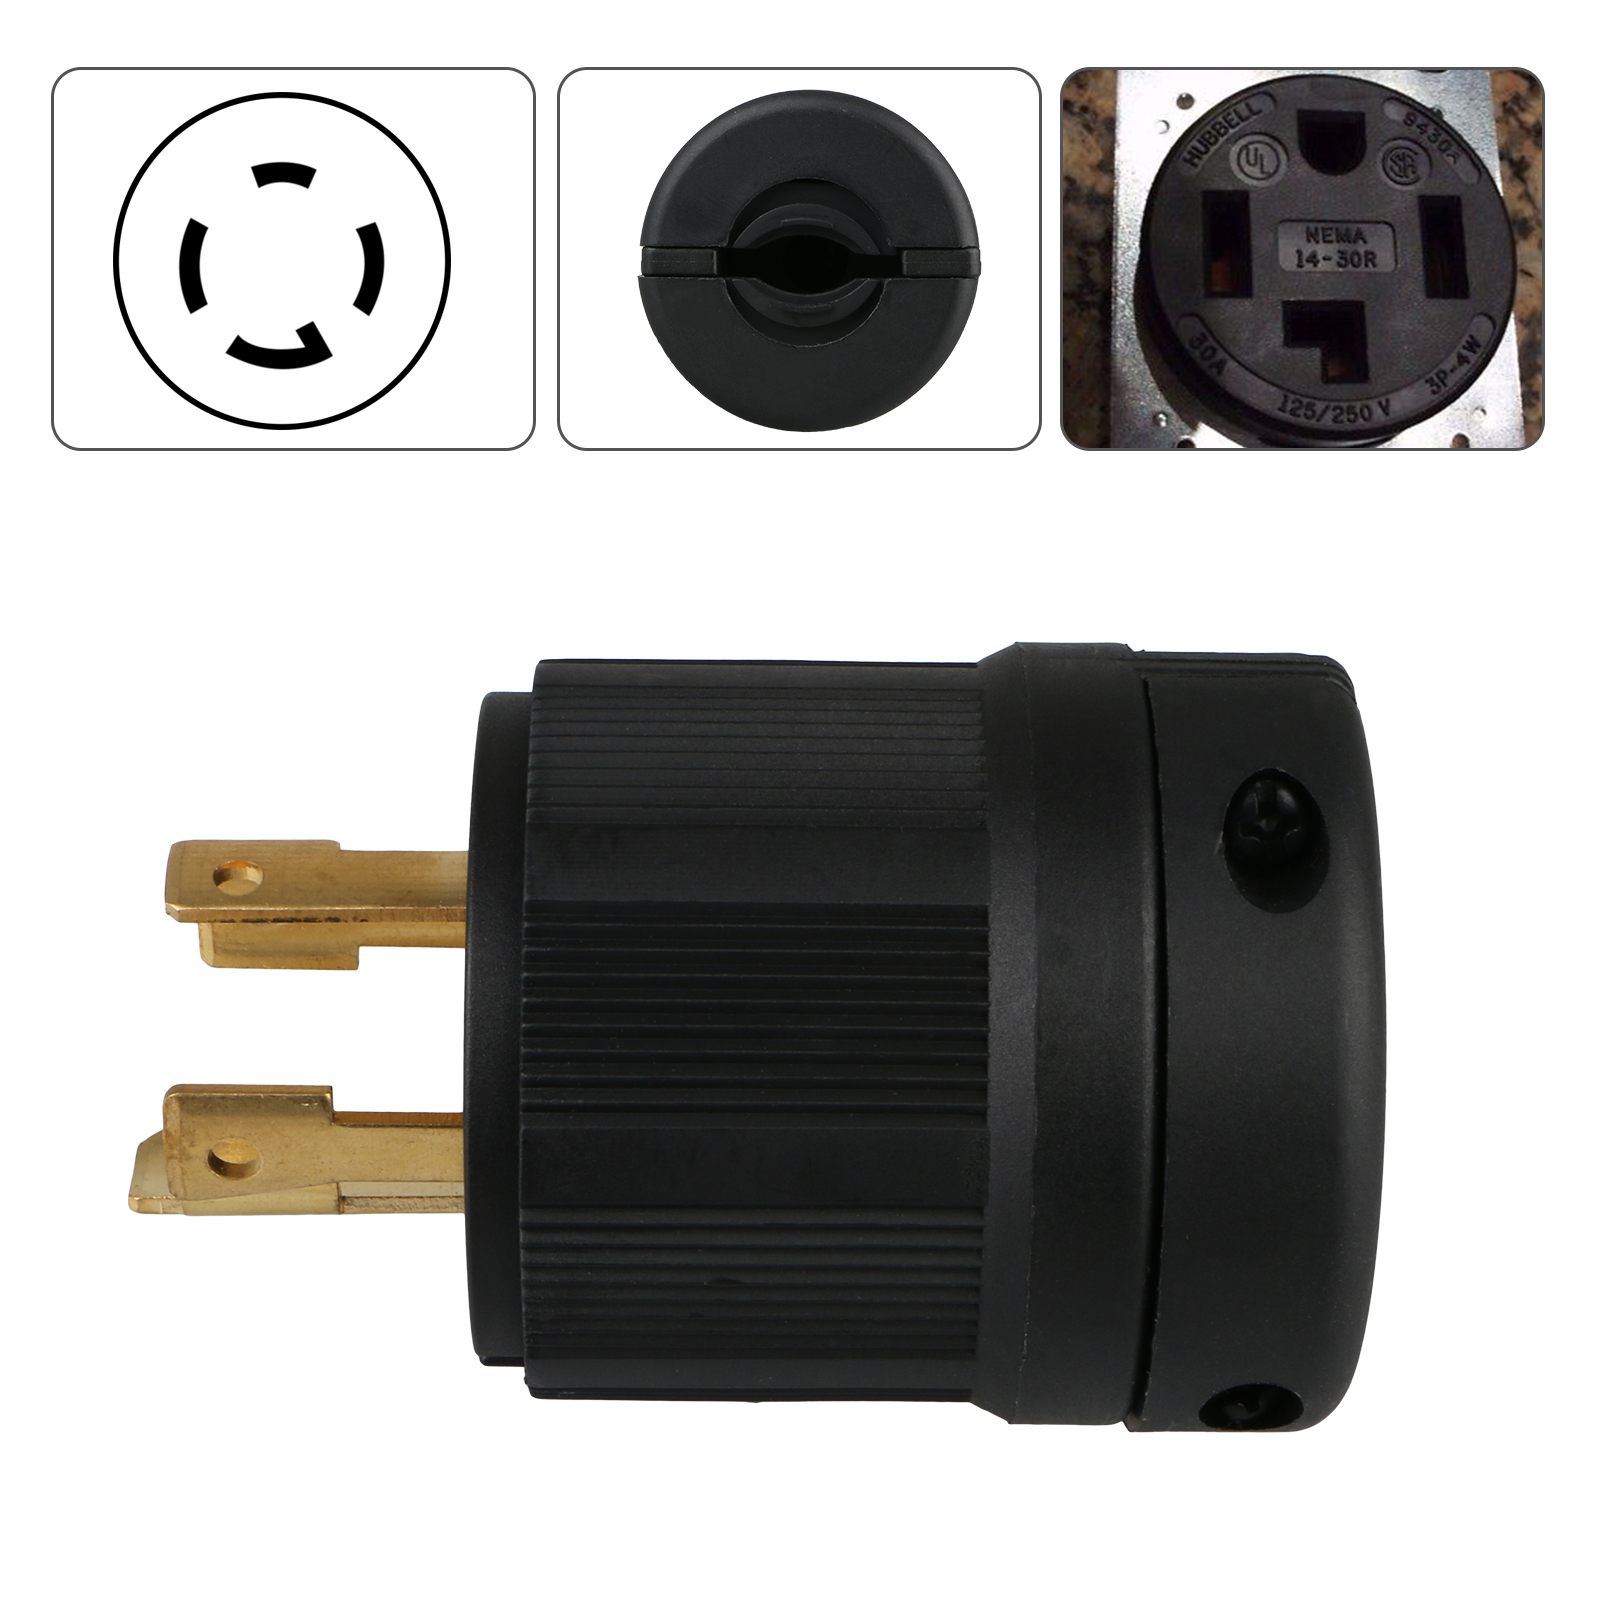 125v 250v 4 Wire Twist Lock Electric Male Plug Connector Nema L14 Wiring A L1430 Image Is Loading